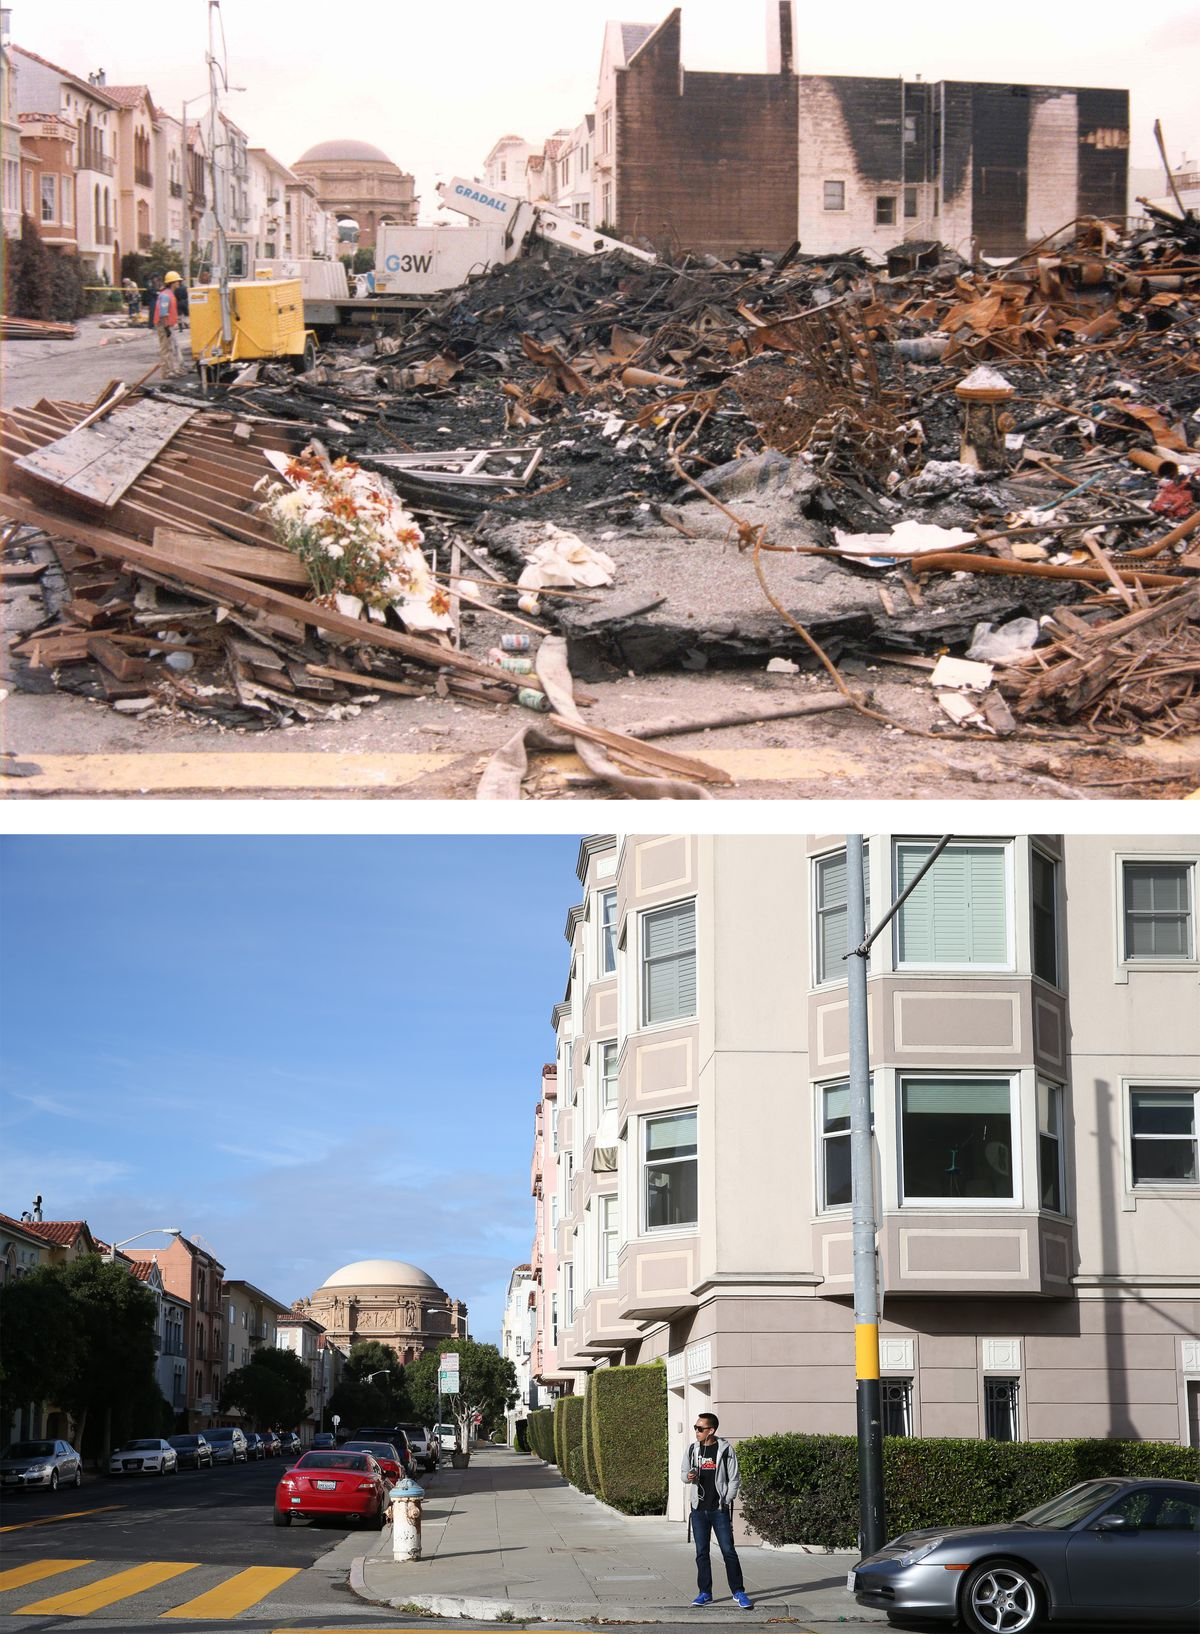 25 Years Since The Bay Area Earthquake: Then And Now